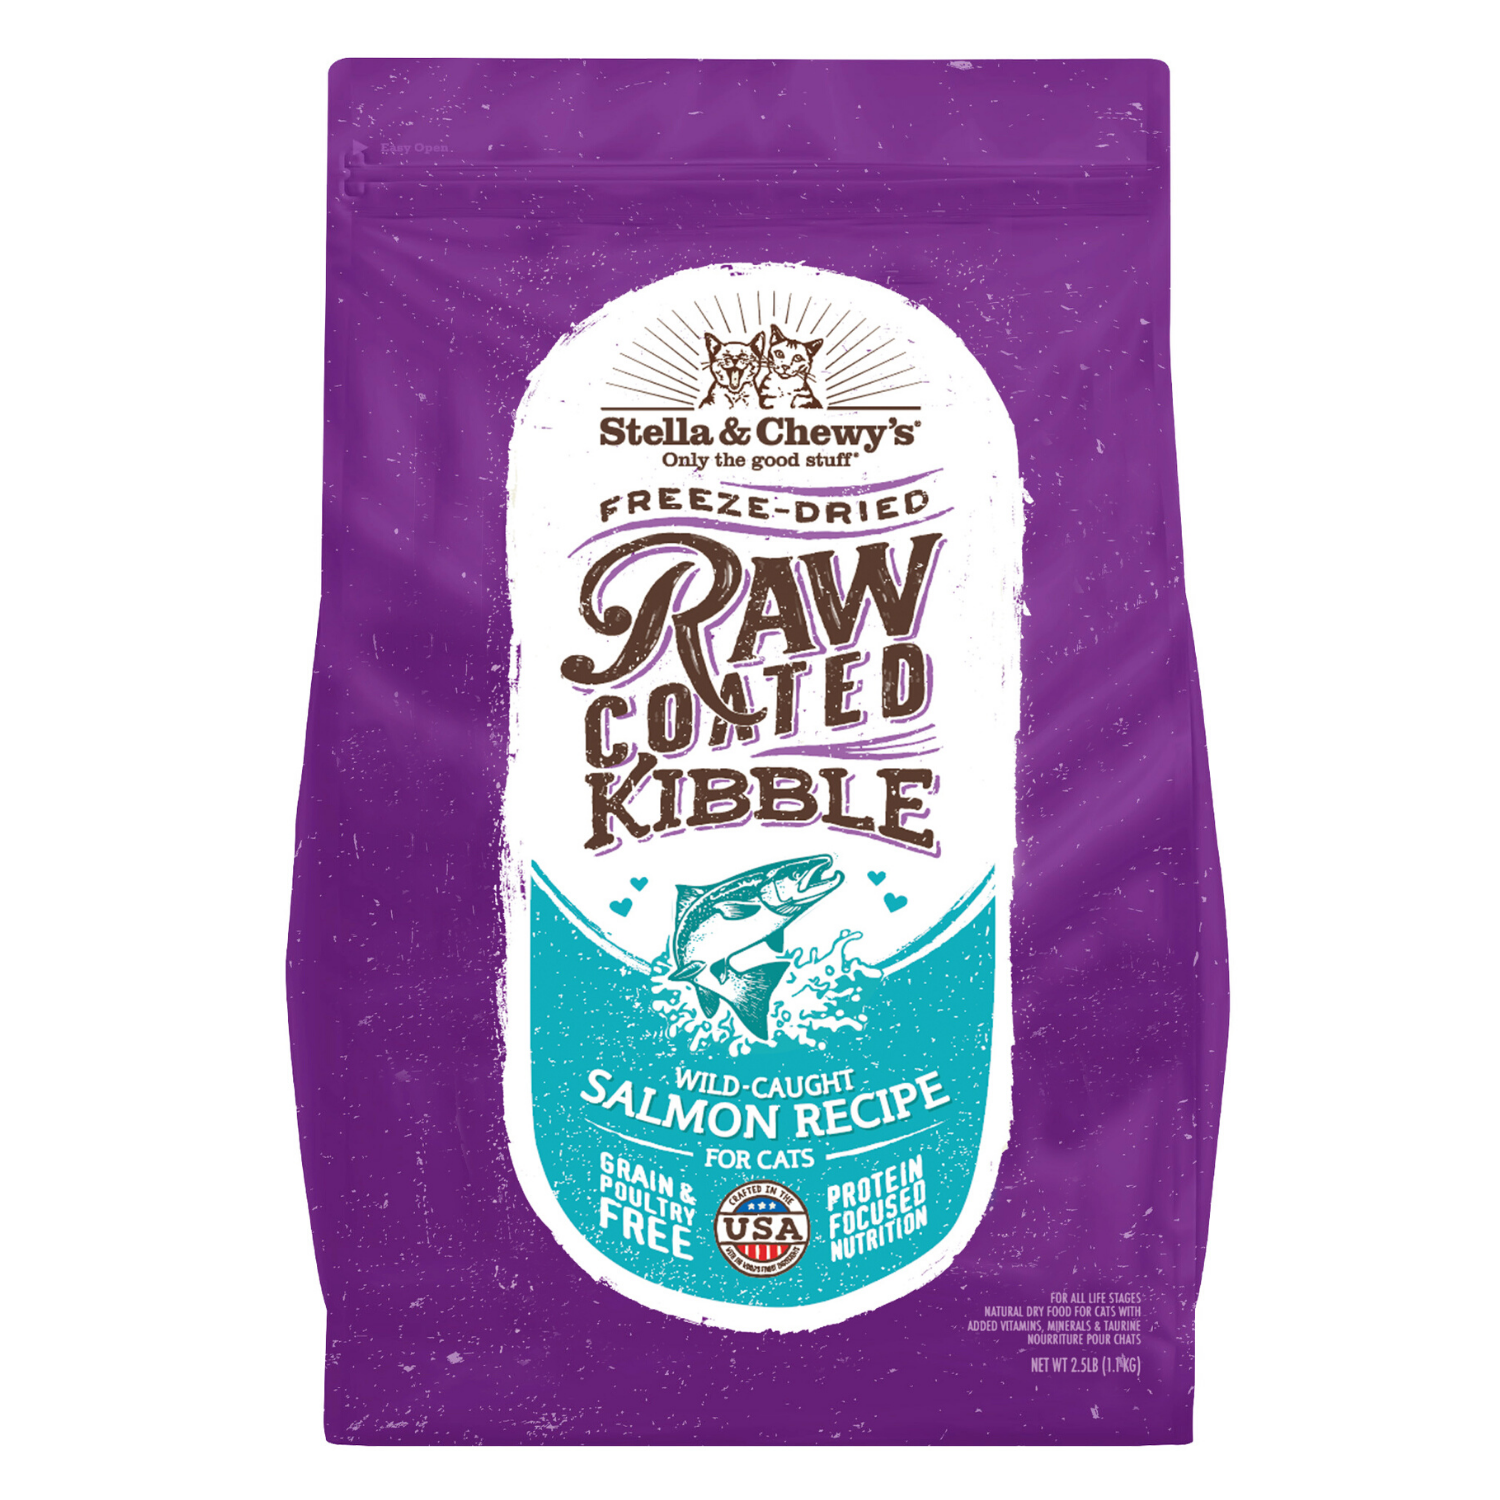 Stella & Chewy's Raw Coated Kibble (Wild Caught Salmon) - 2.27kg / 4.54kg